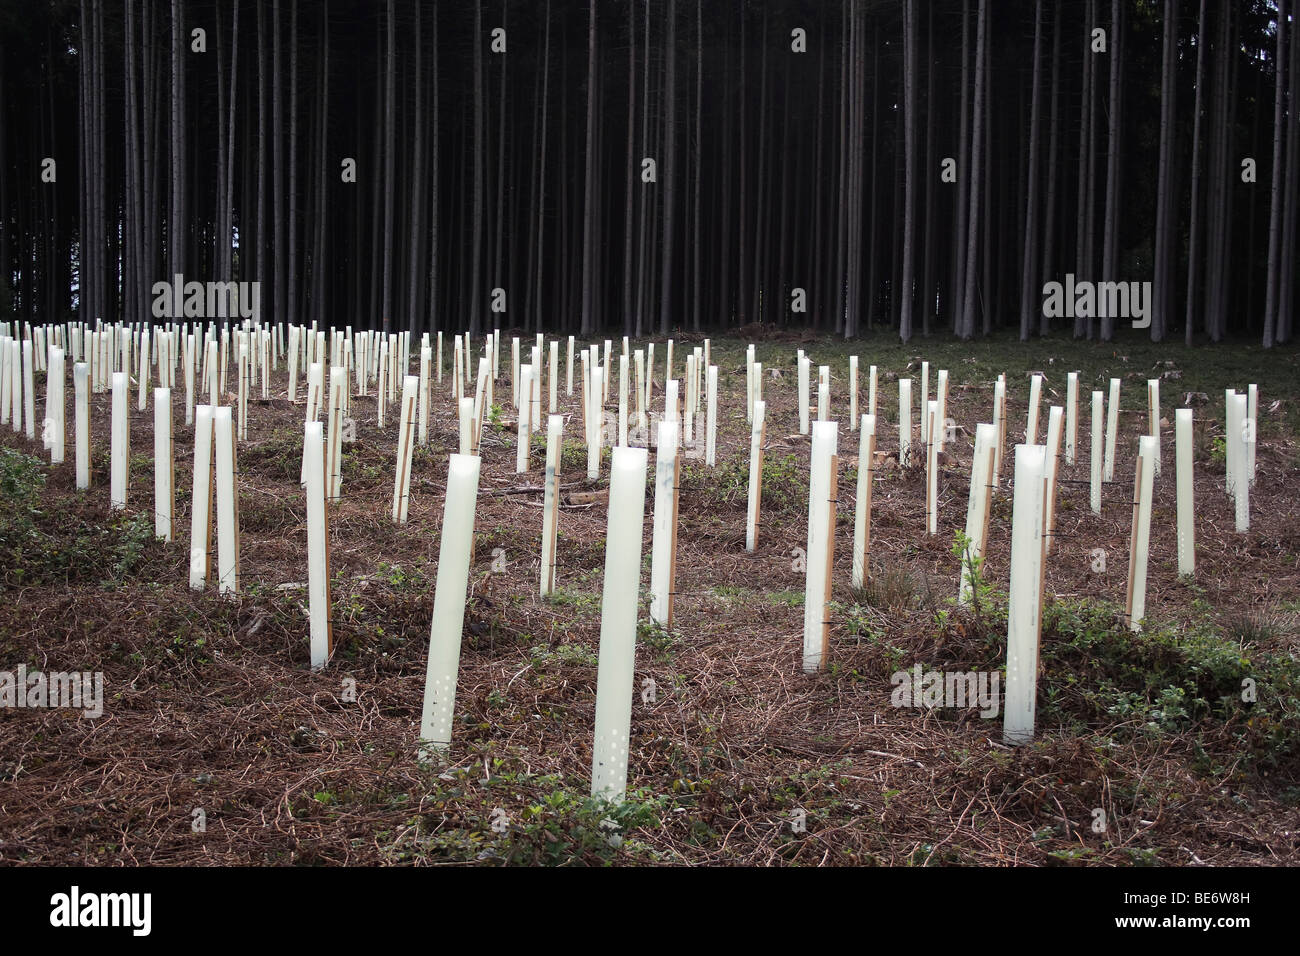 Plastic wrapping as a protection for seedlings of trees - Stock Image